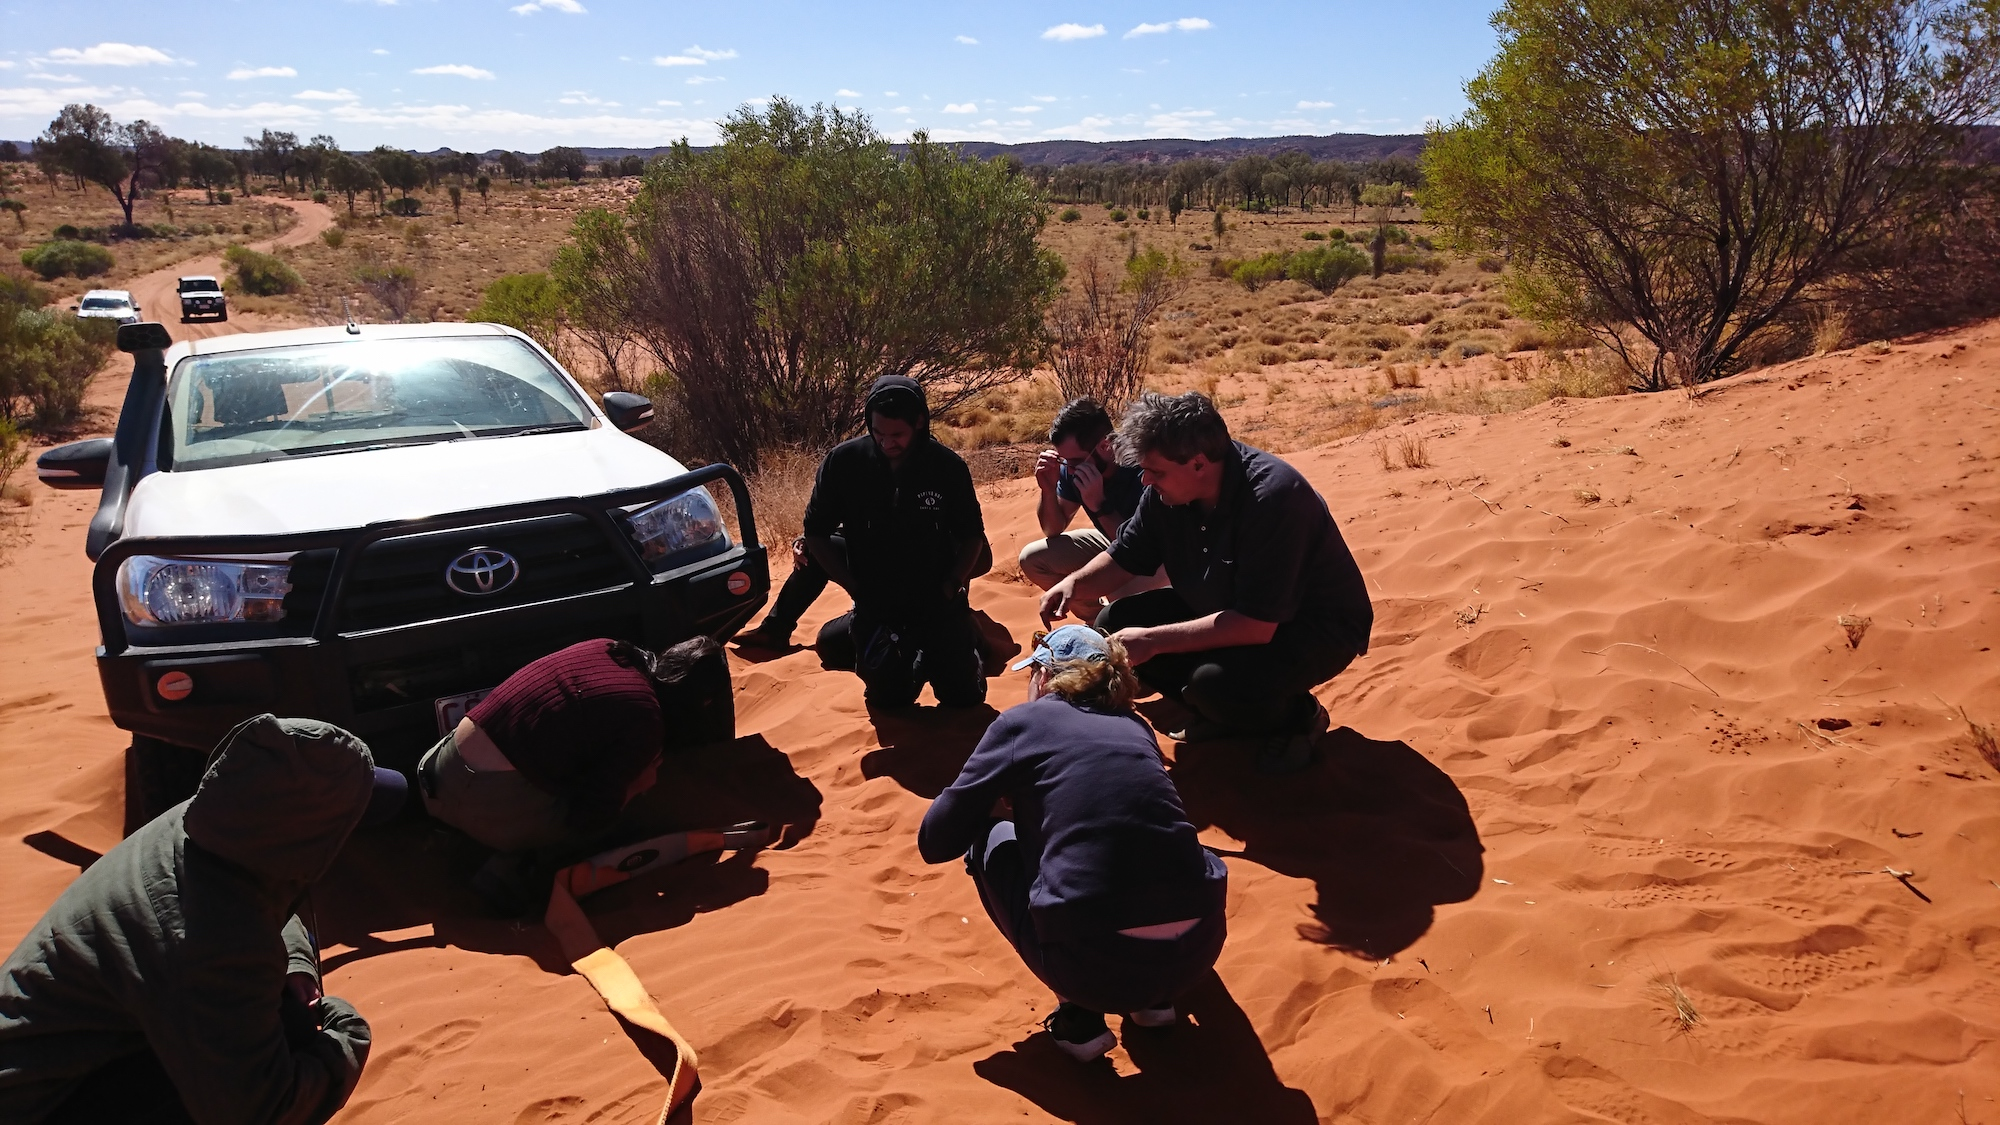 Get hands on training to keep your vehicle moving in the bush